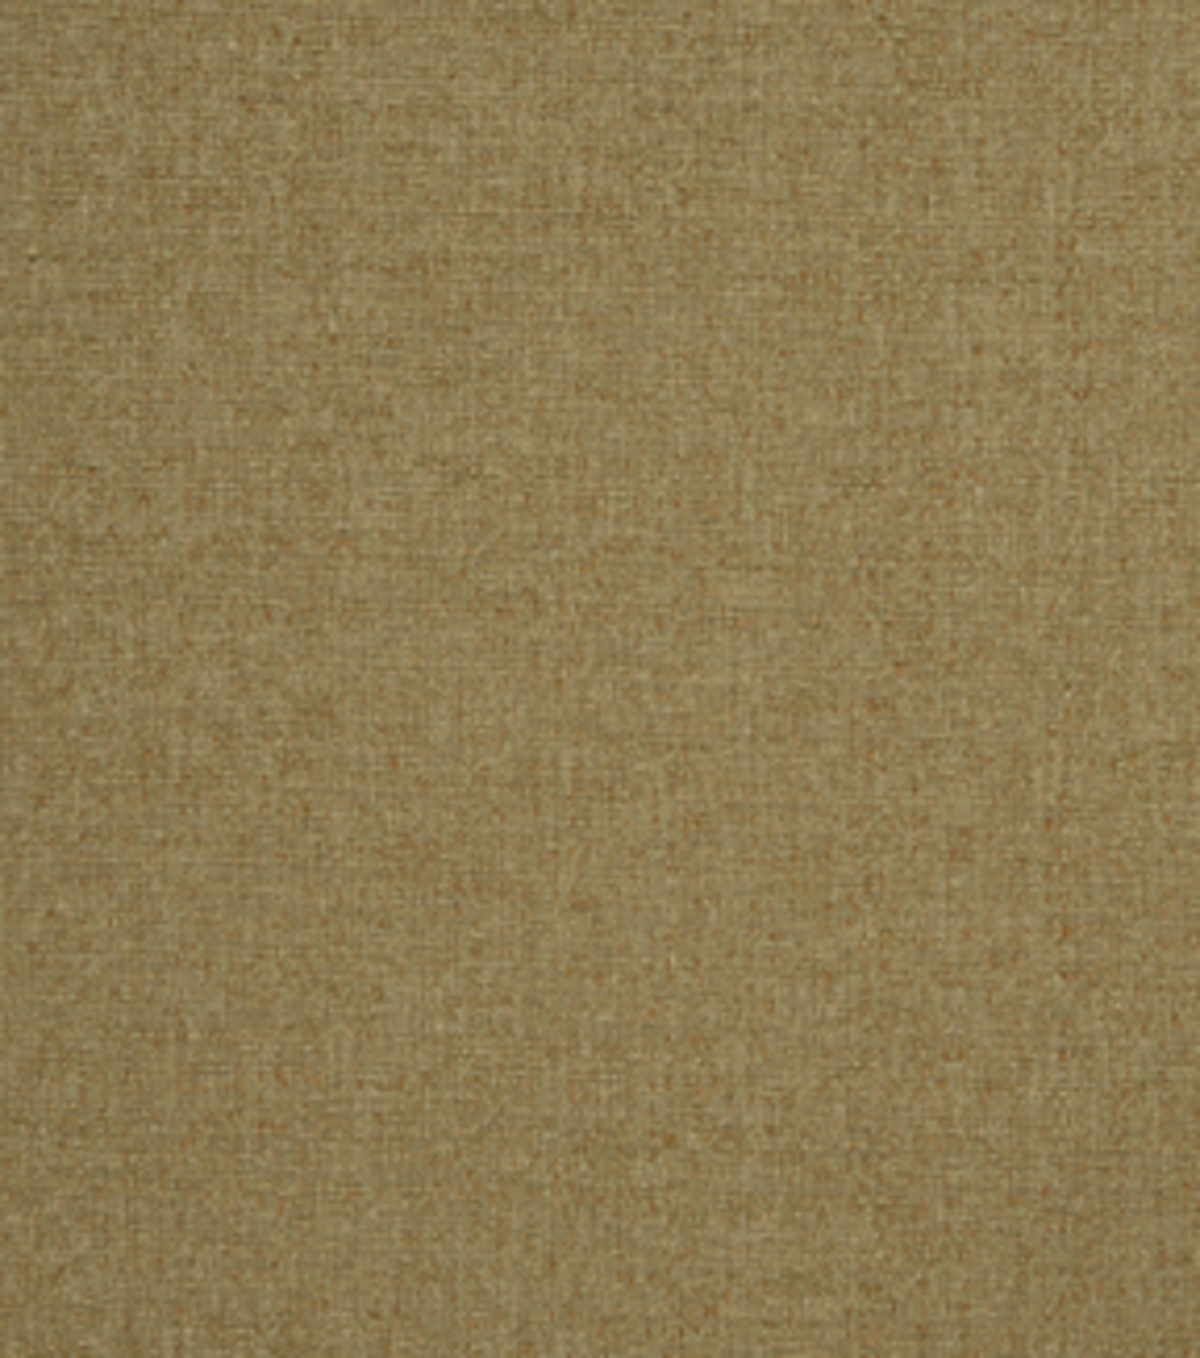 Home Decor 8\u0022x8\u0022 Fabric Swatch-Signature Series Texture Loden